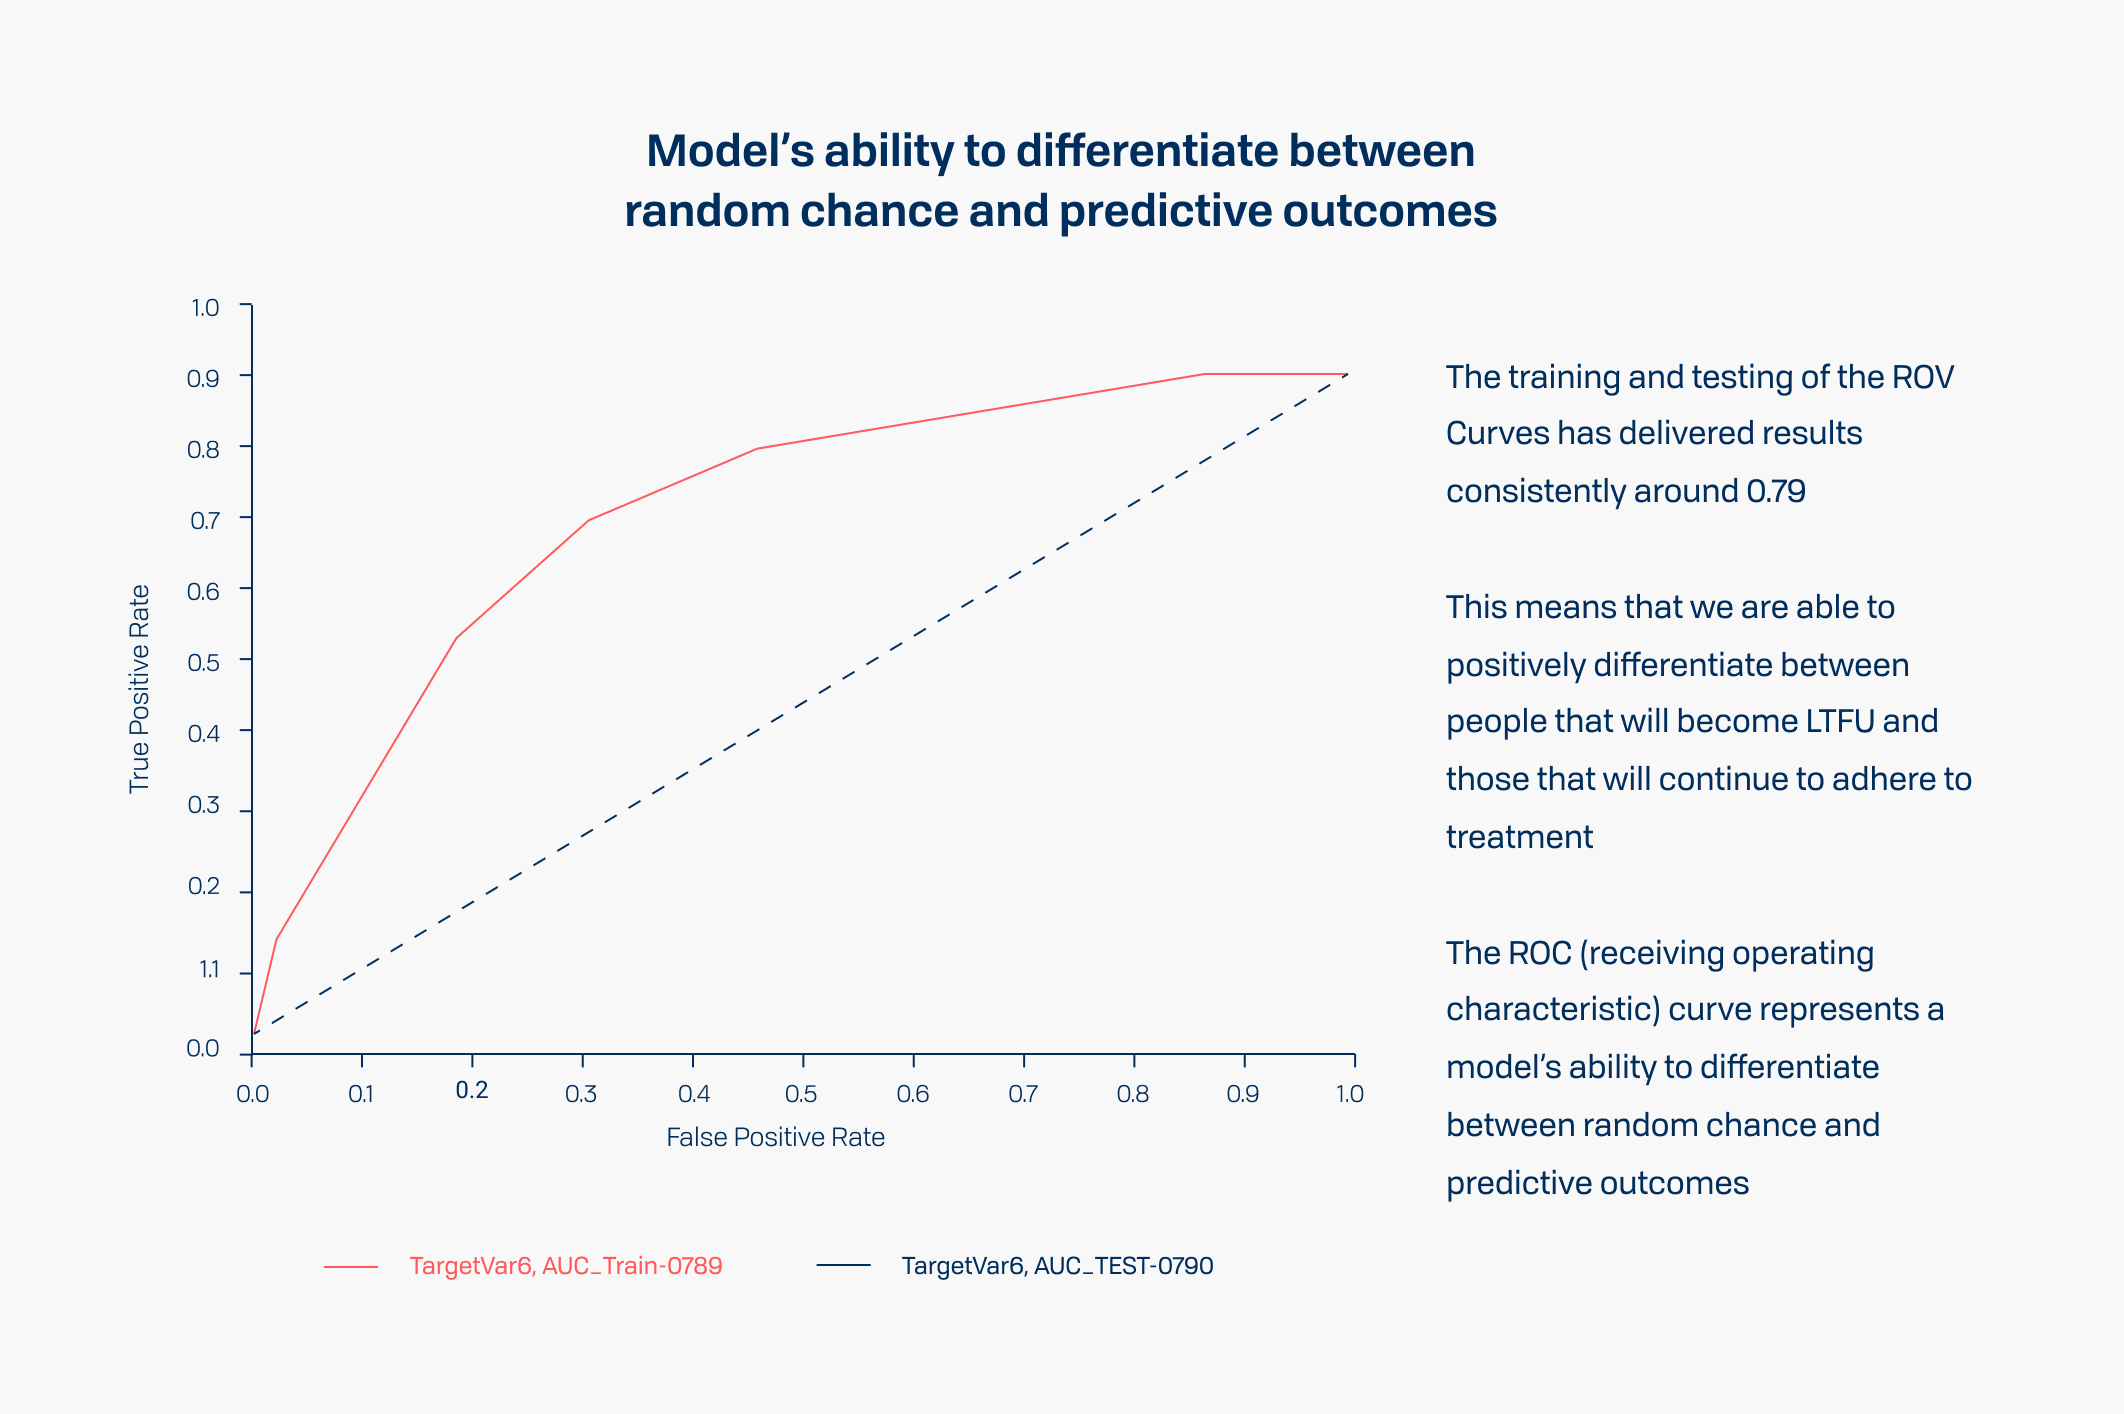 Model's ability to differentiate between random chance and predictive outcomes